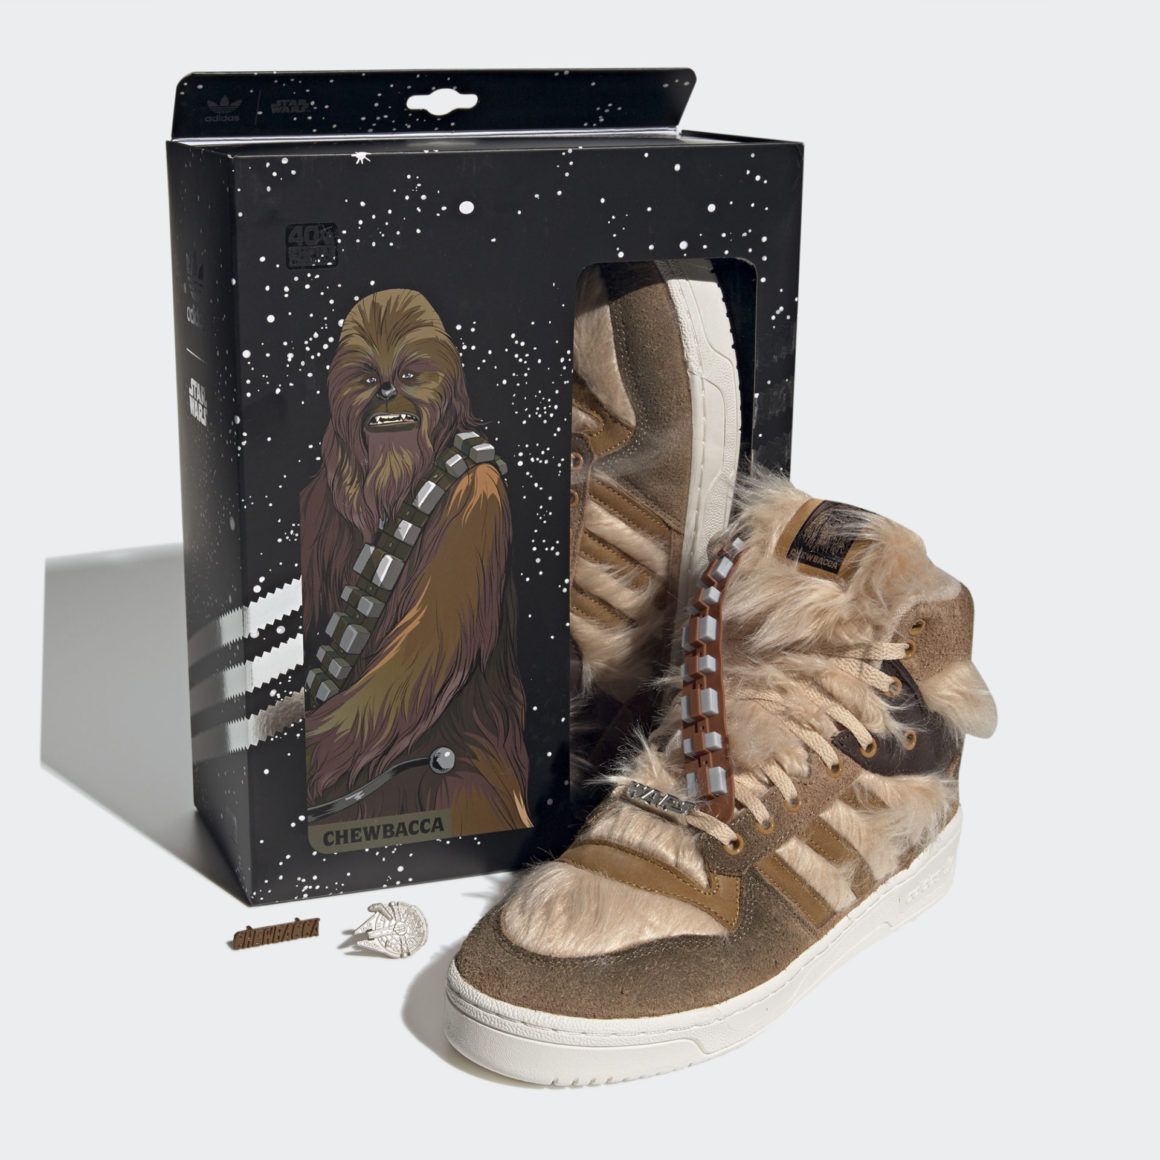 Star Wars x adidas Rivalry High Chewbacca